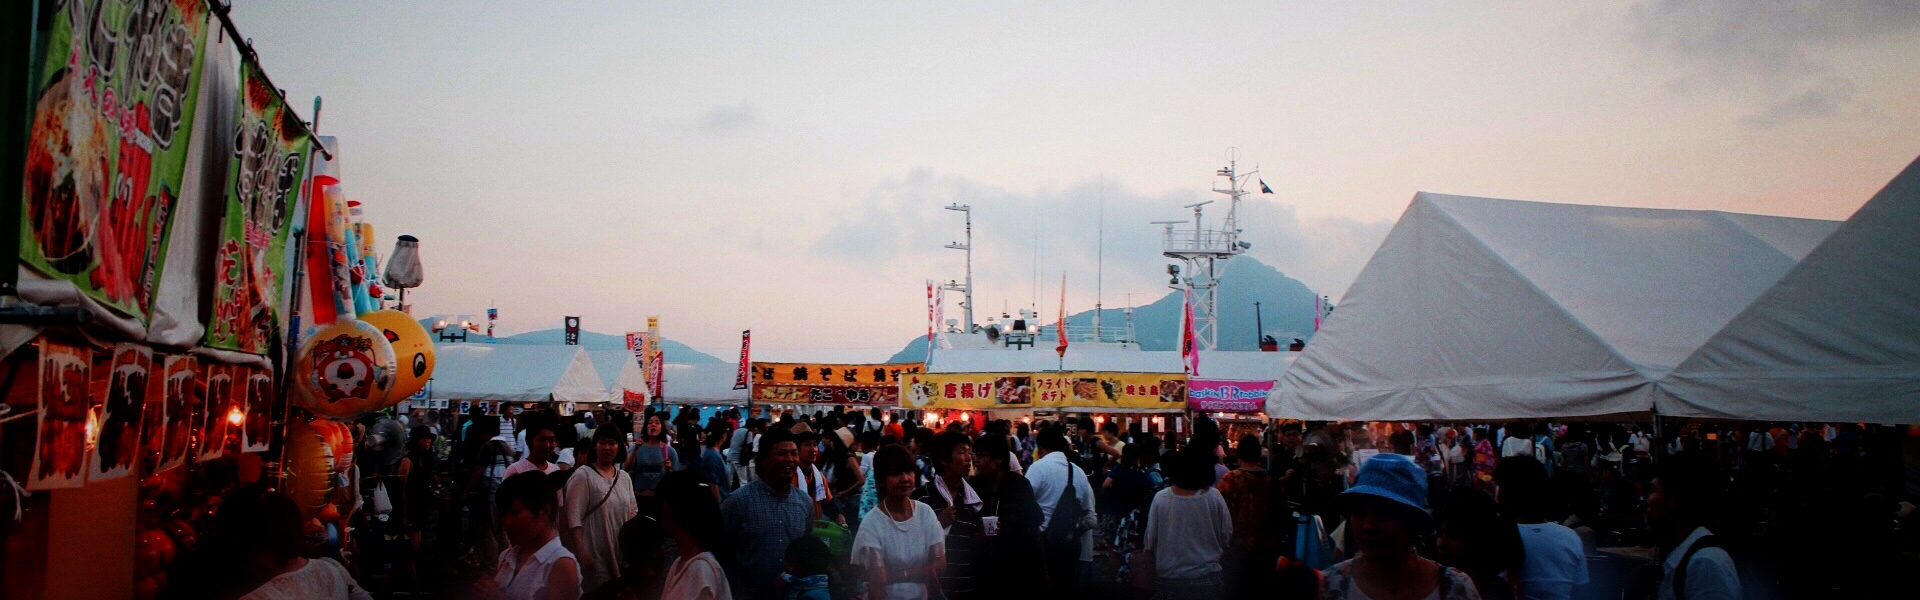 SASEBO SEASIDE FESTIVAL 2016